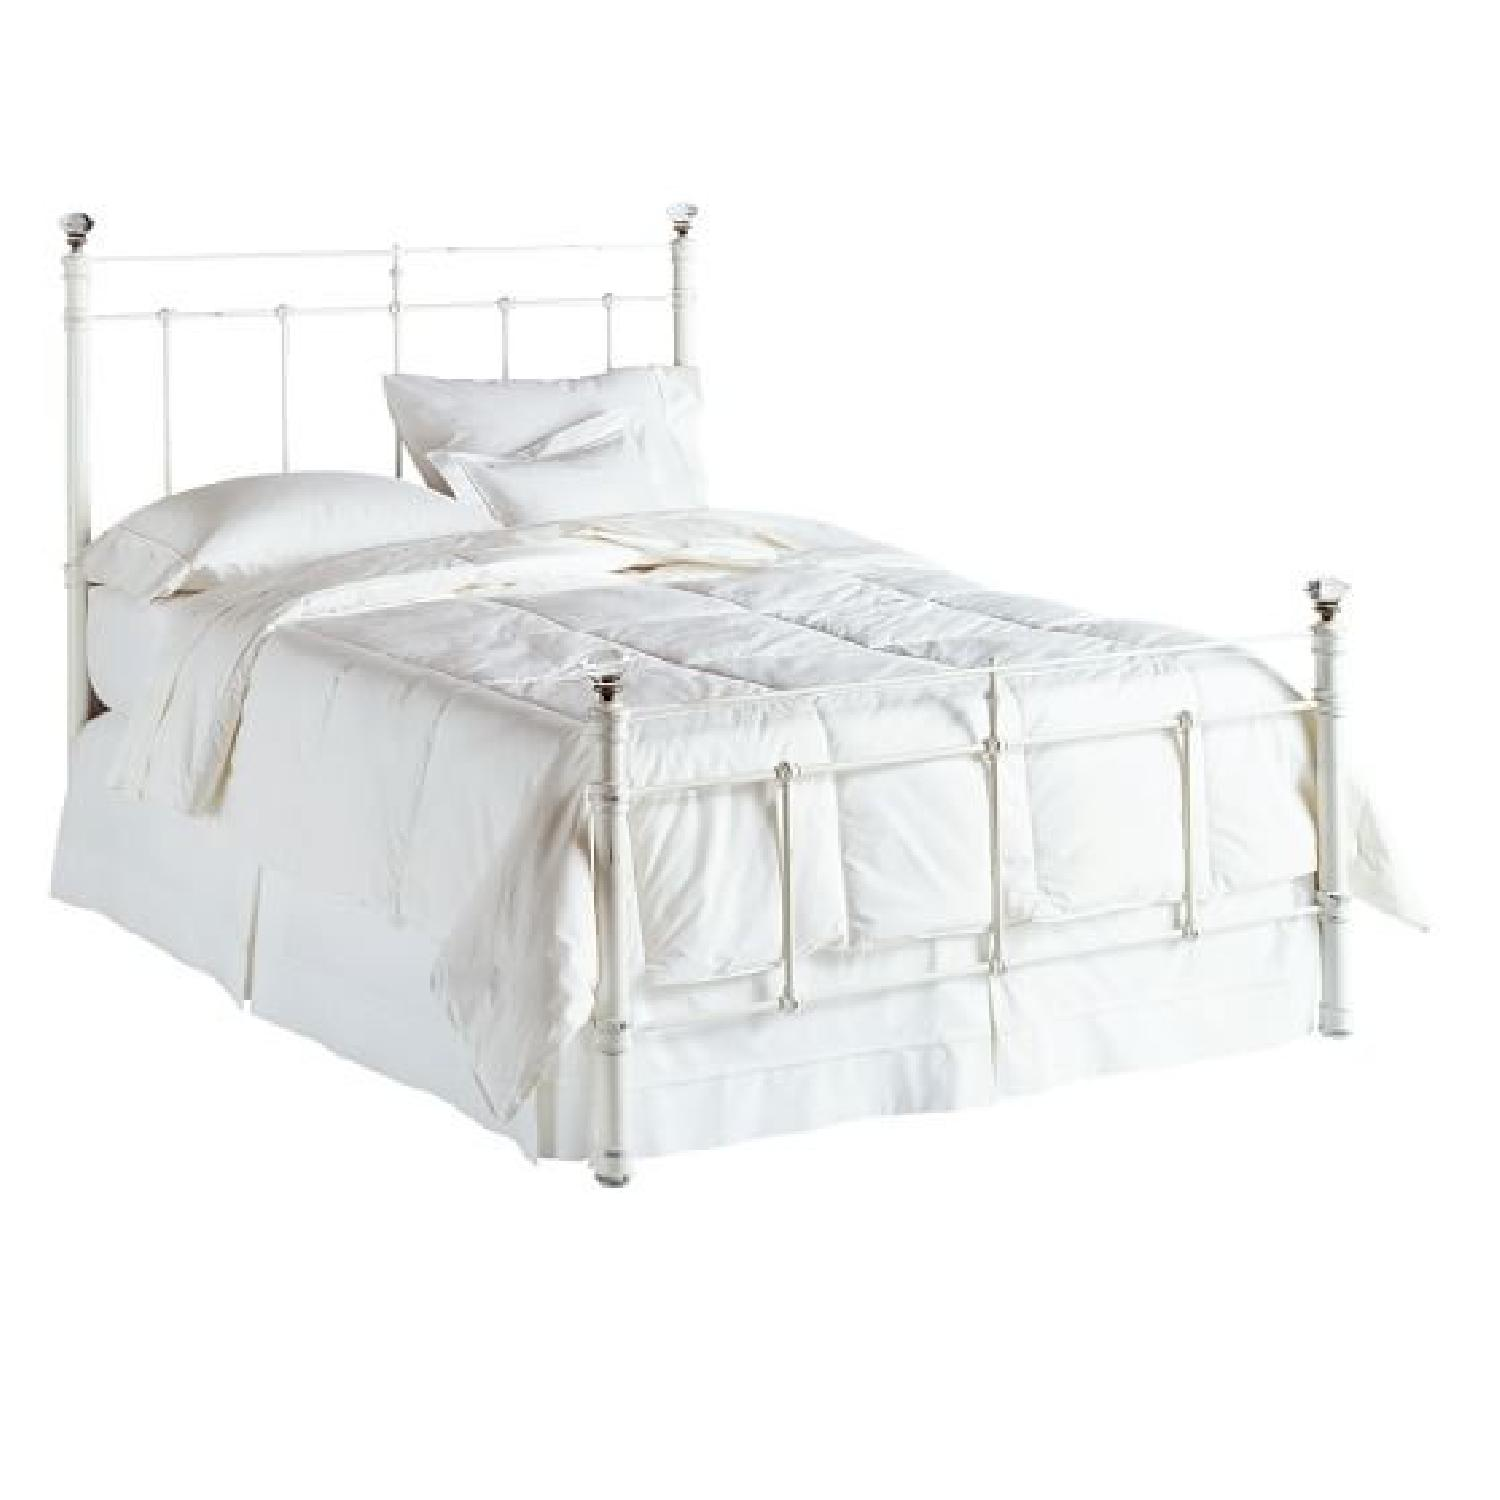 Pottery Barn Claudia Queen Bed in White - image-1